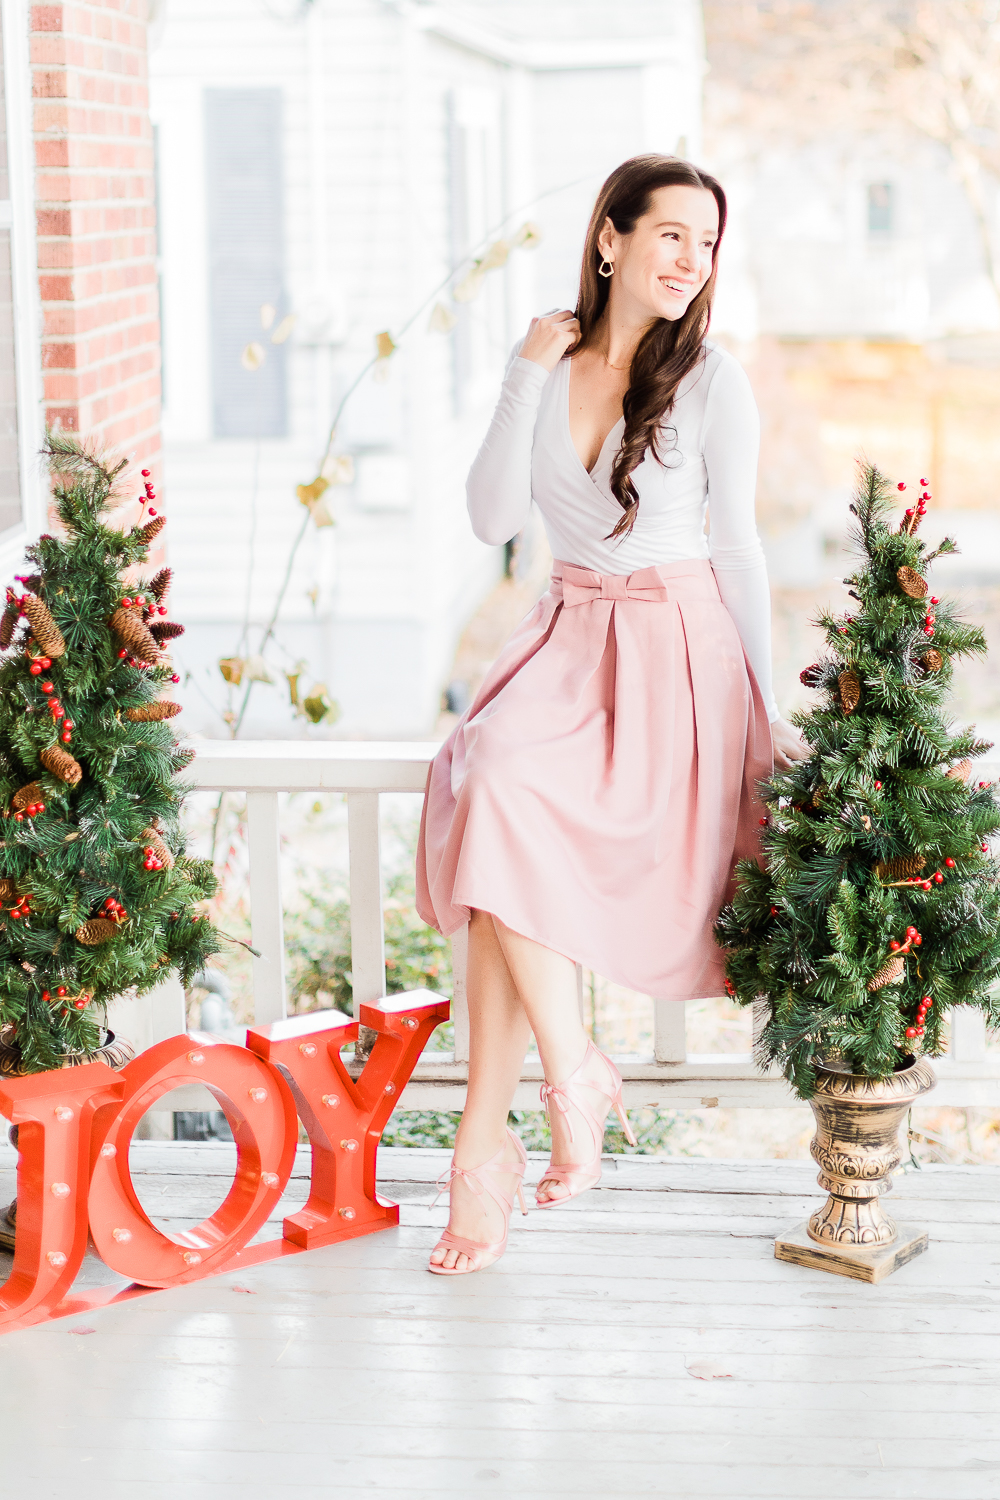 Preppy Christmas party outfit idea styled by affordable fashion blogger Stephanie Ziajka on Diary of a Debutante